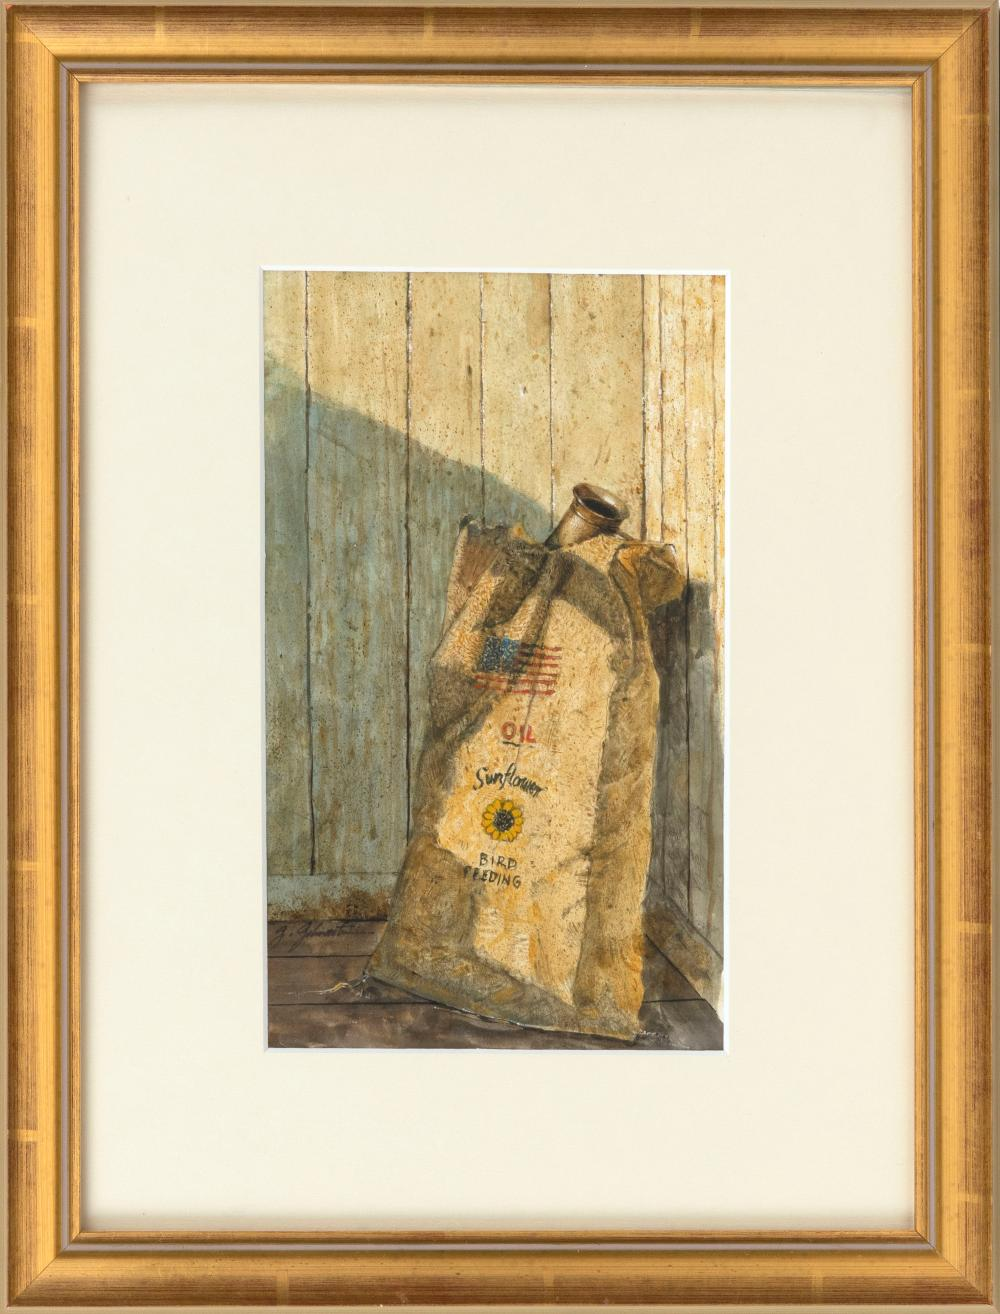 """GARRY GILMARTIN, America, 1949-2010, Sunflower seed sack., Watercolor on paper, 10"""" x 6"""" sight. Framed 17"""" x 13""""."""